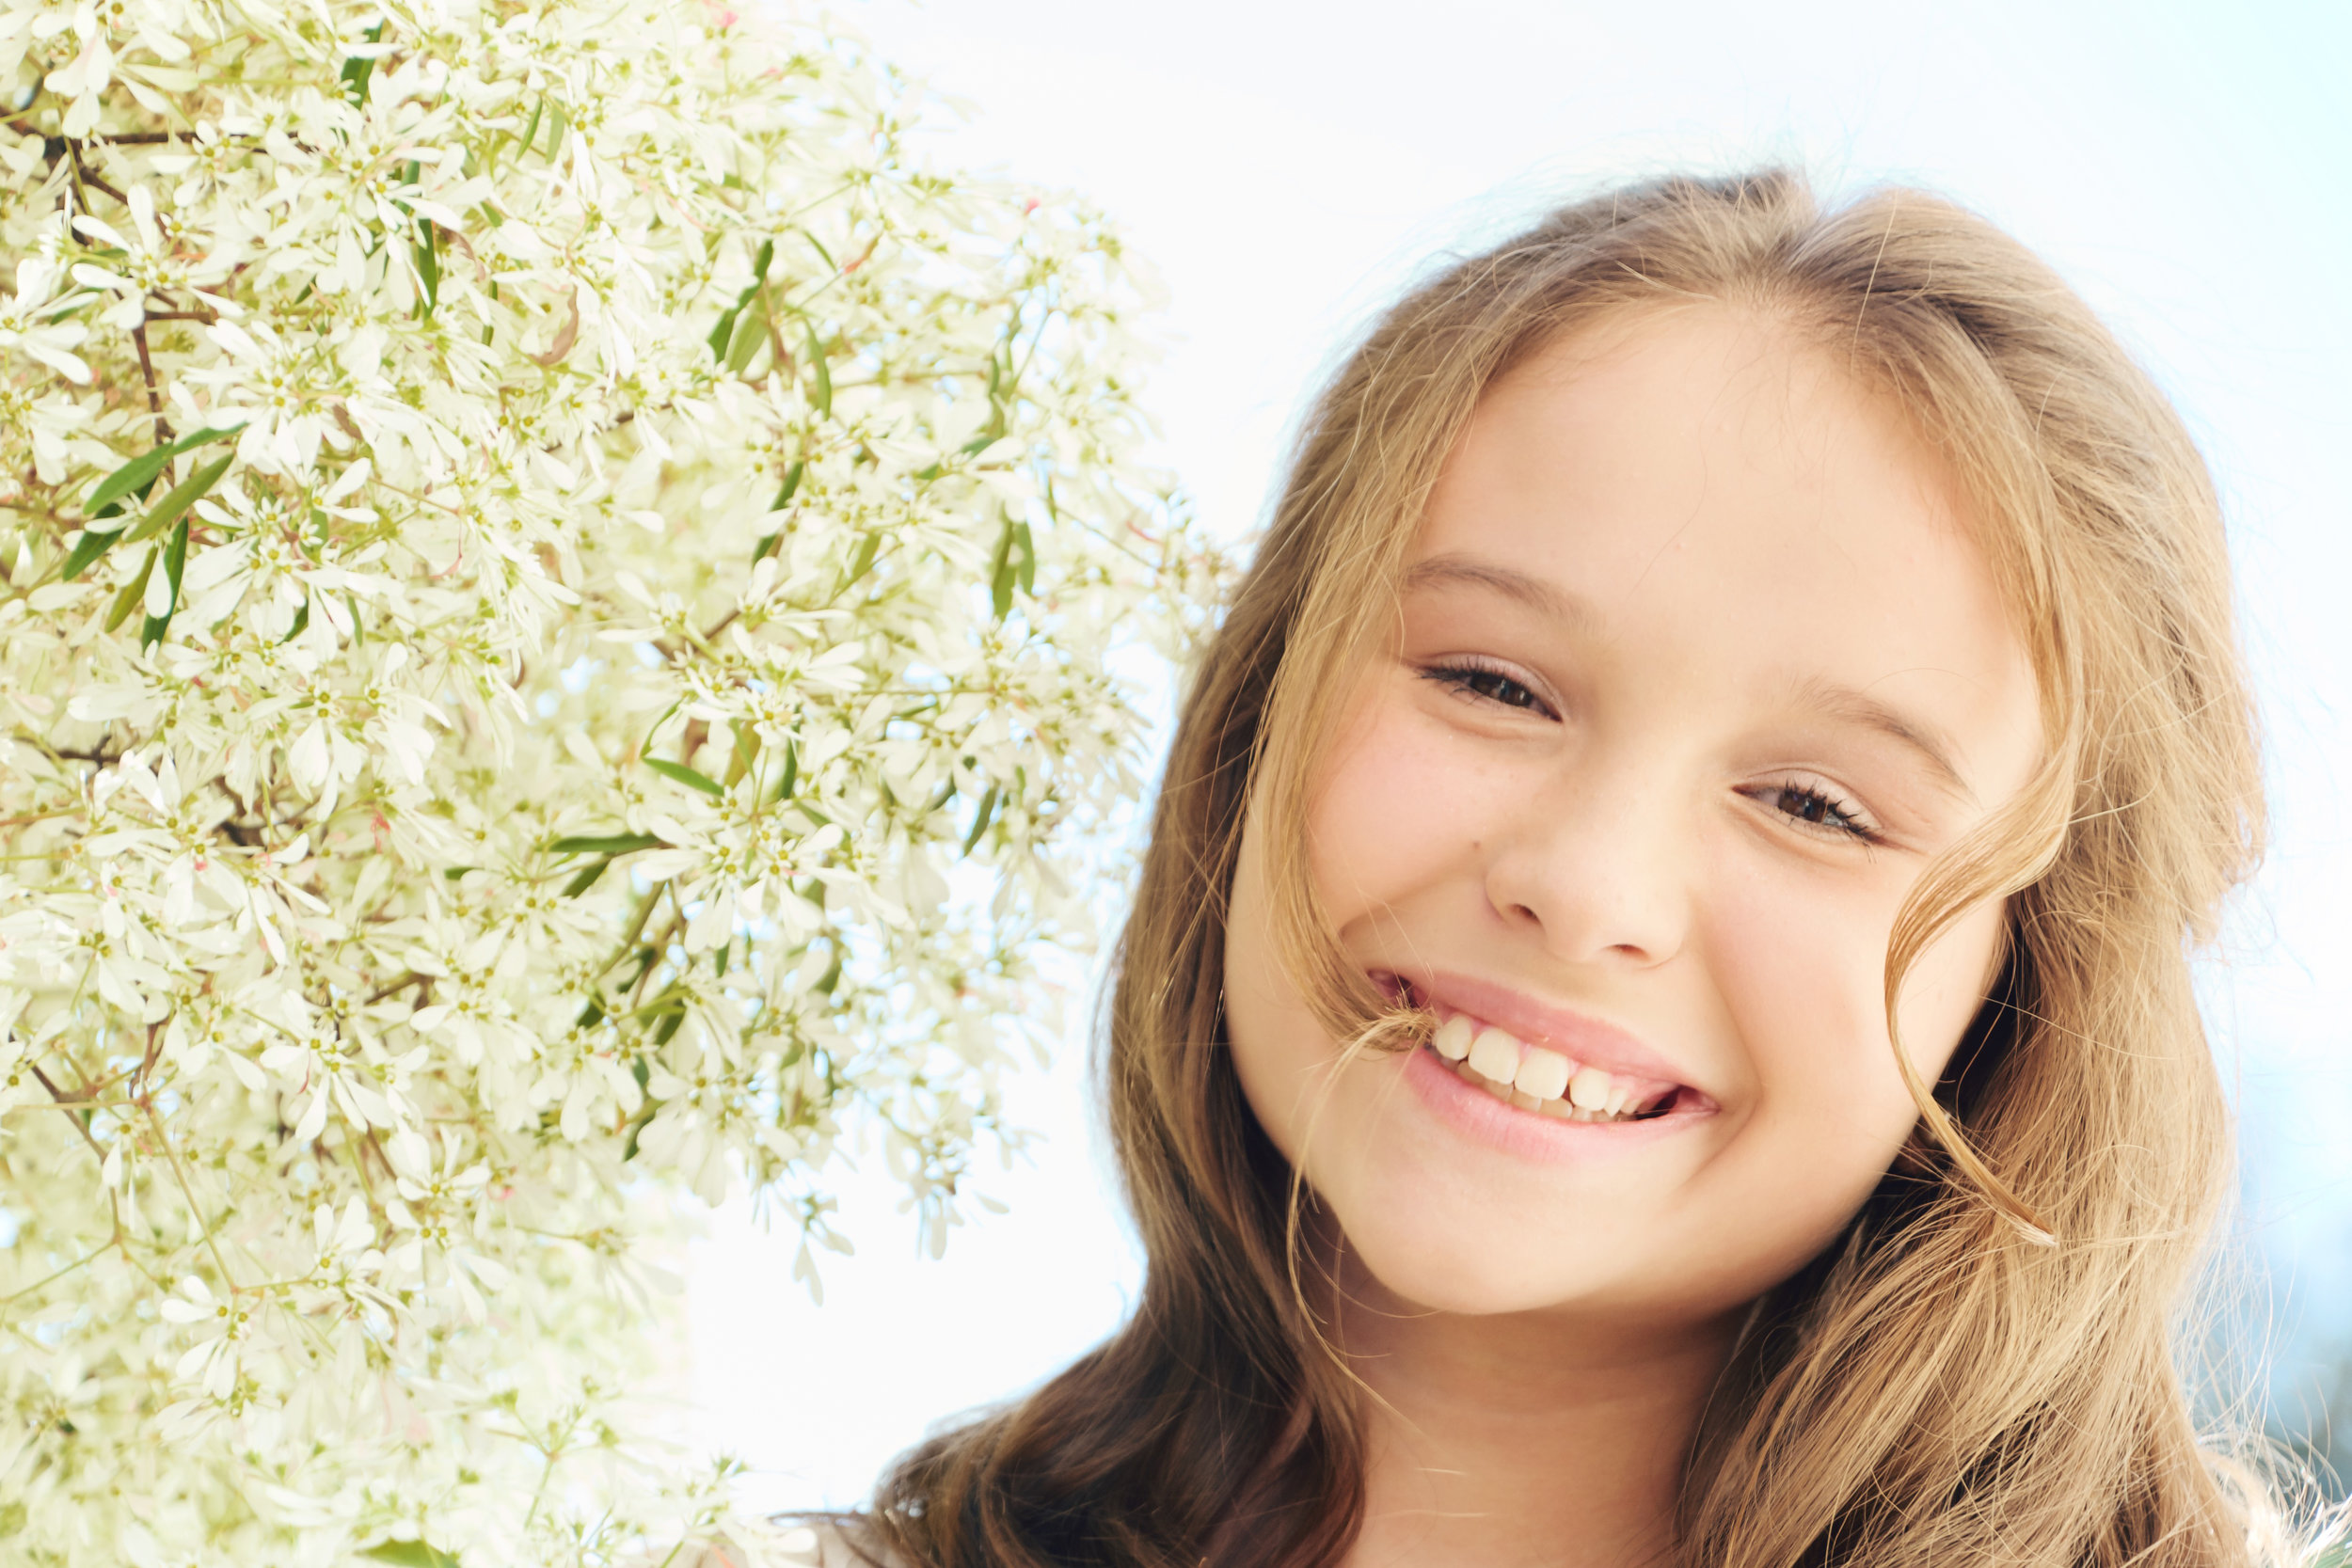 child oral health and cavity prevention